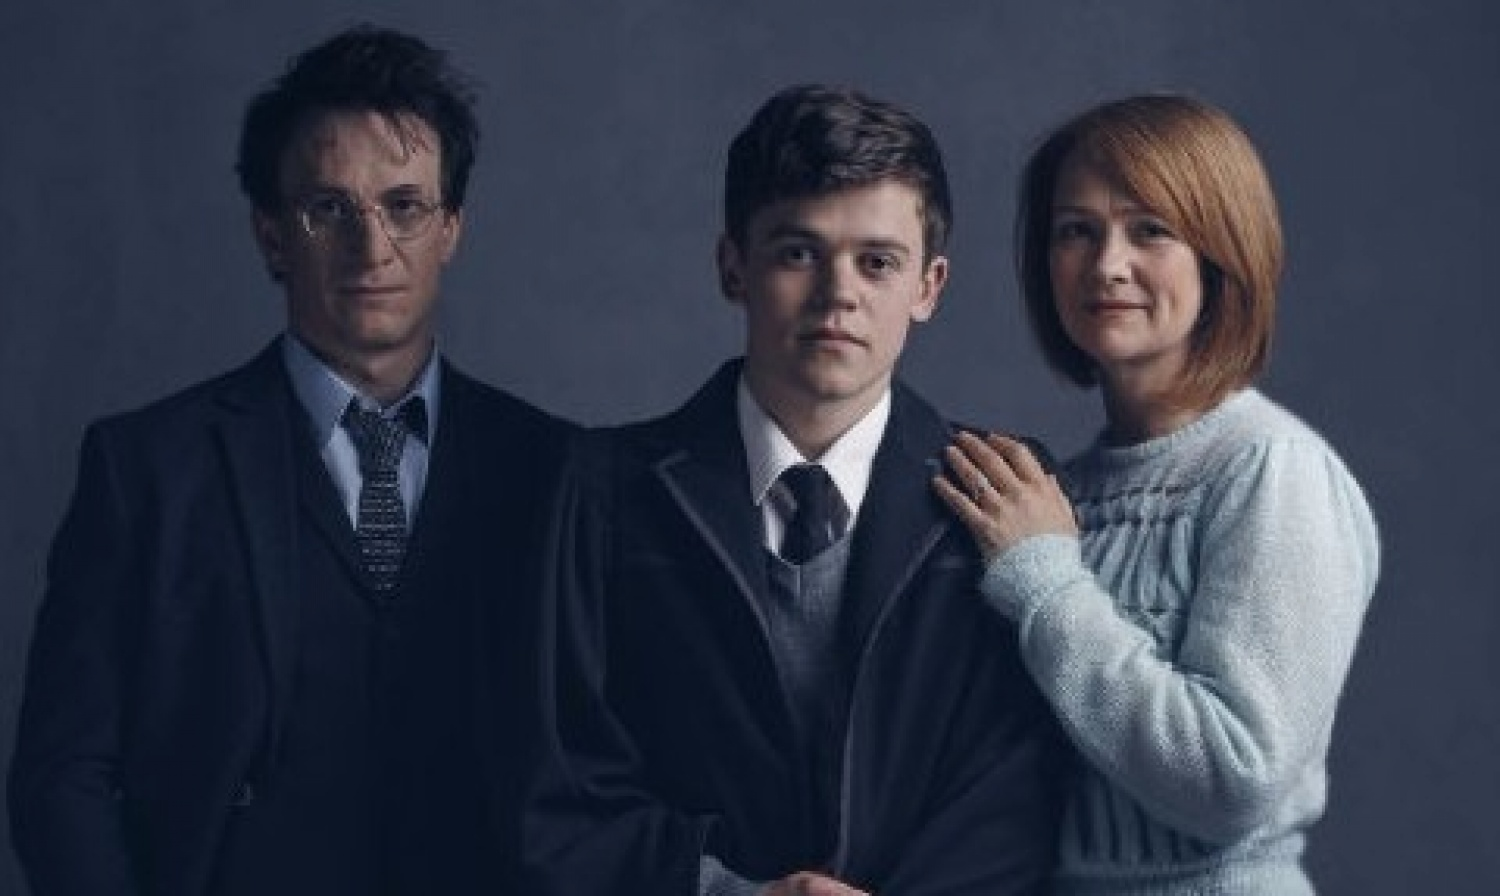 """<div><strong><span style=""""font-family: Impact,Charcoal,sans-serif;"""">Everything you need to know about Harry Potter</span></strong></div>"""